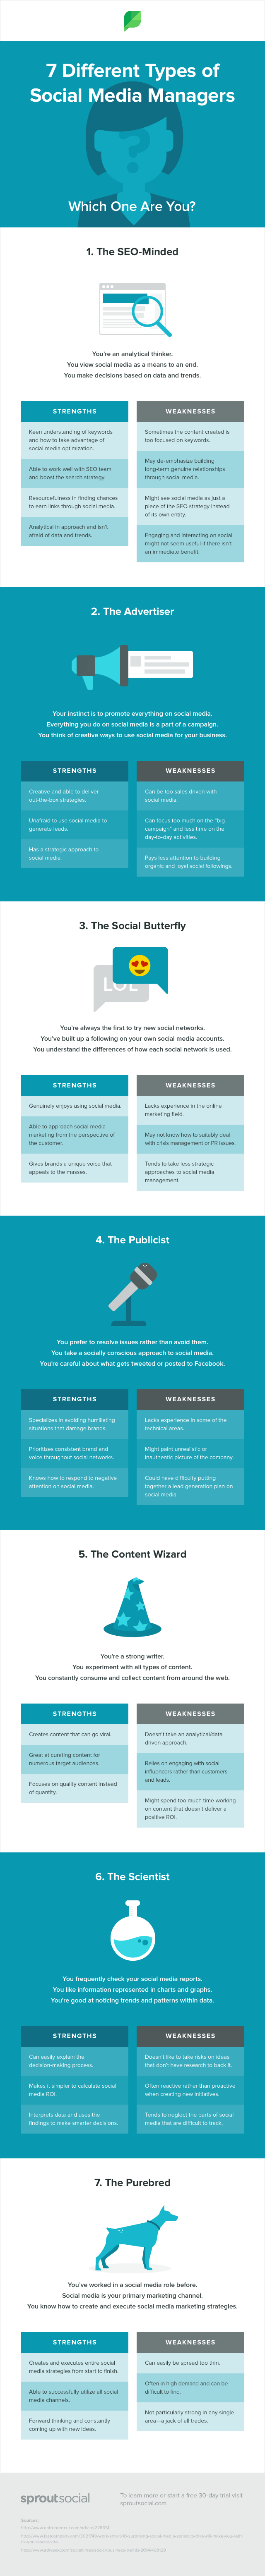 social media managers infographic